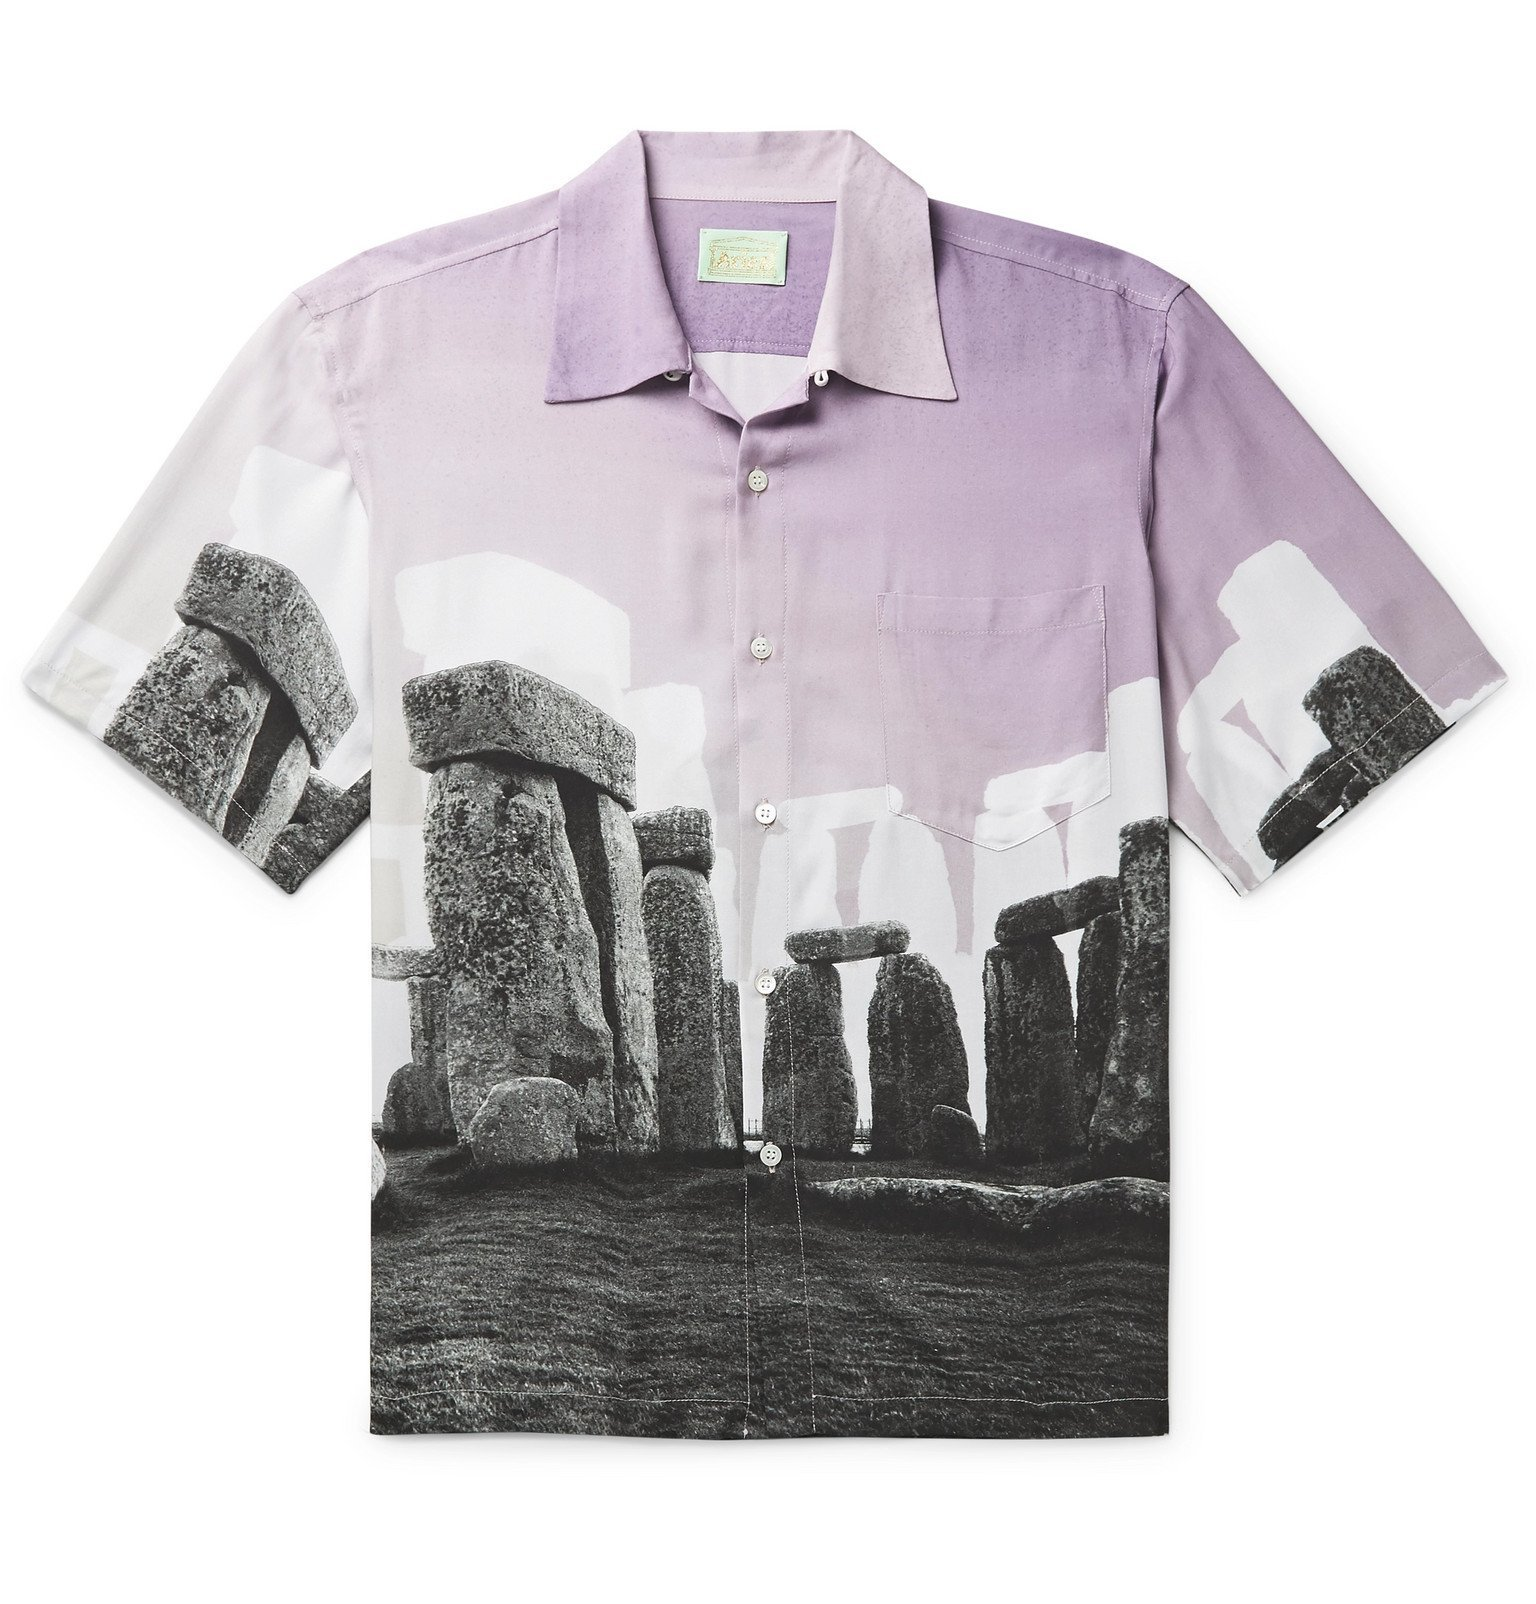 Aries - Jeremy Deller Camp-Collar Printed Woven Shirt - Purple